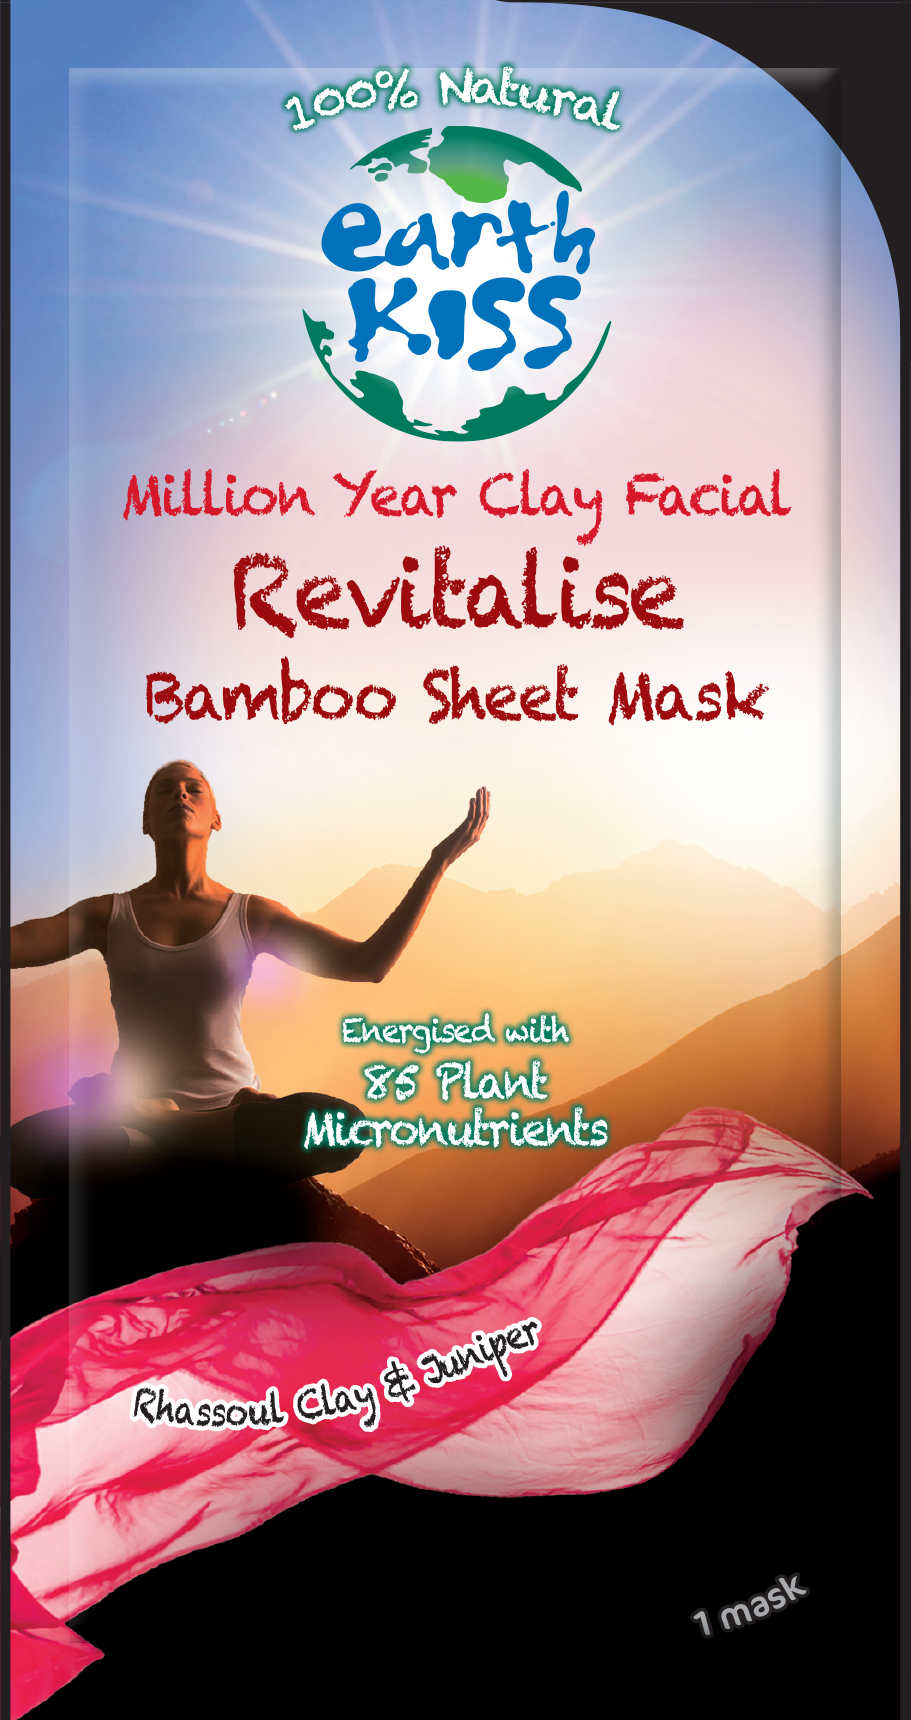 Million Year Clay Facial Revitalise Bamboo Sheet Mask